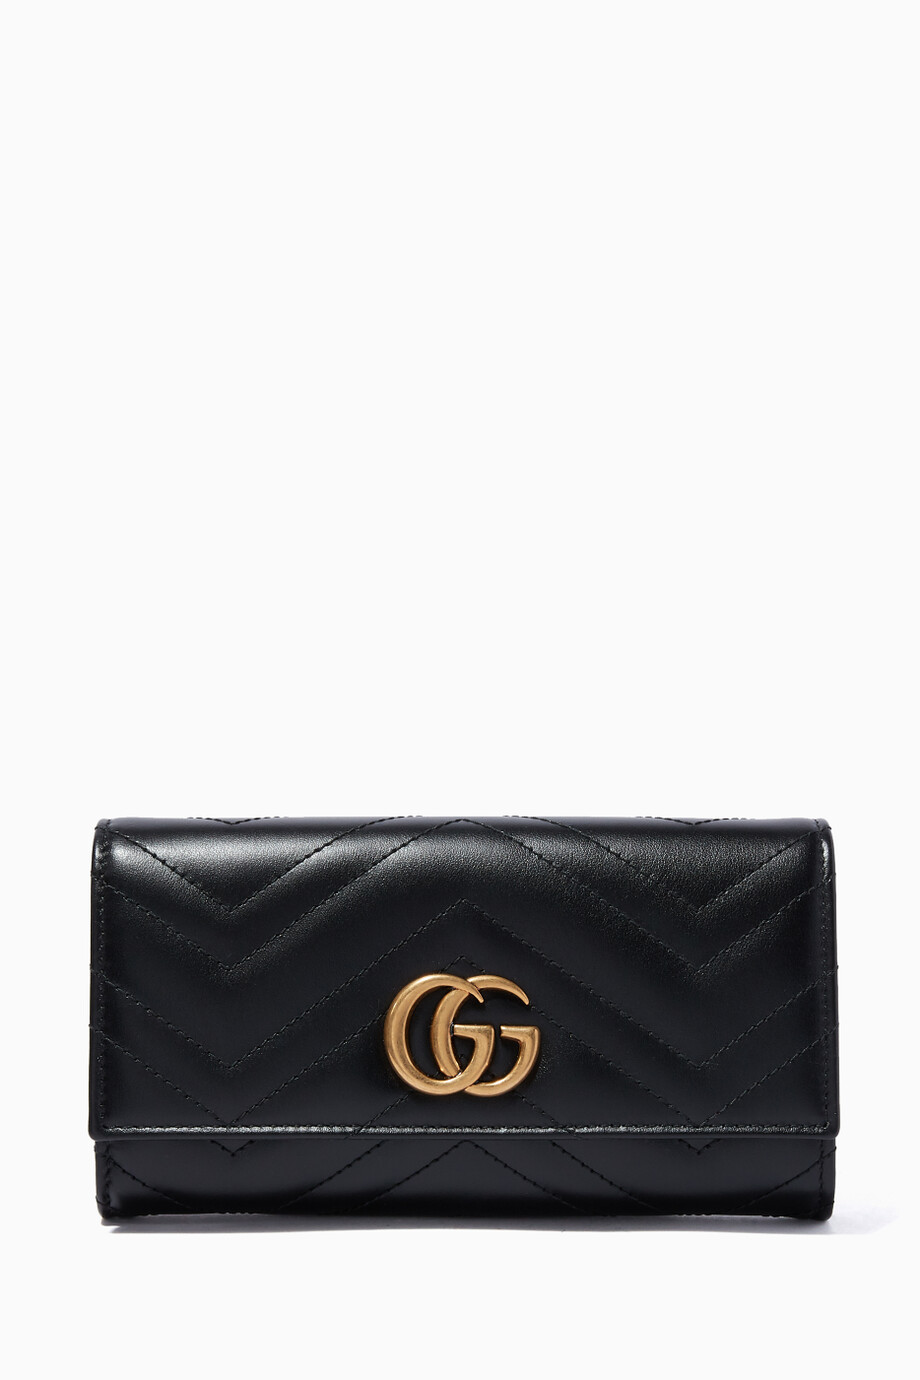 dd0c001b5ca2 Shop Gucci Black Black GG Marmont Continental Wallet for Women ...